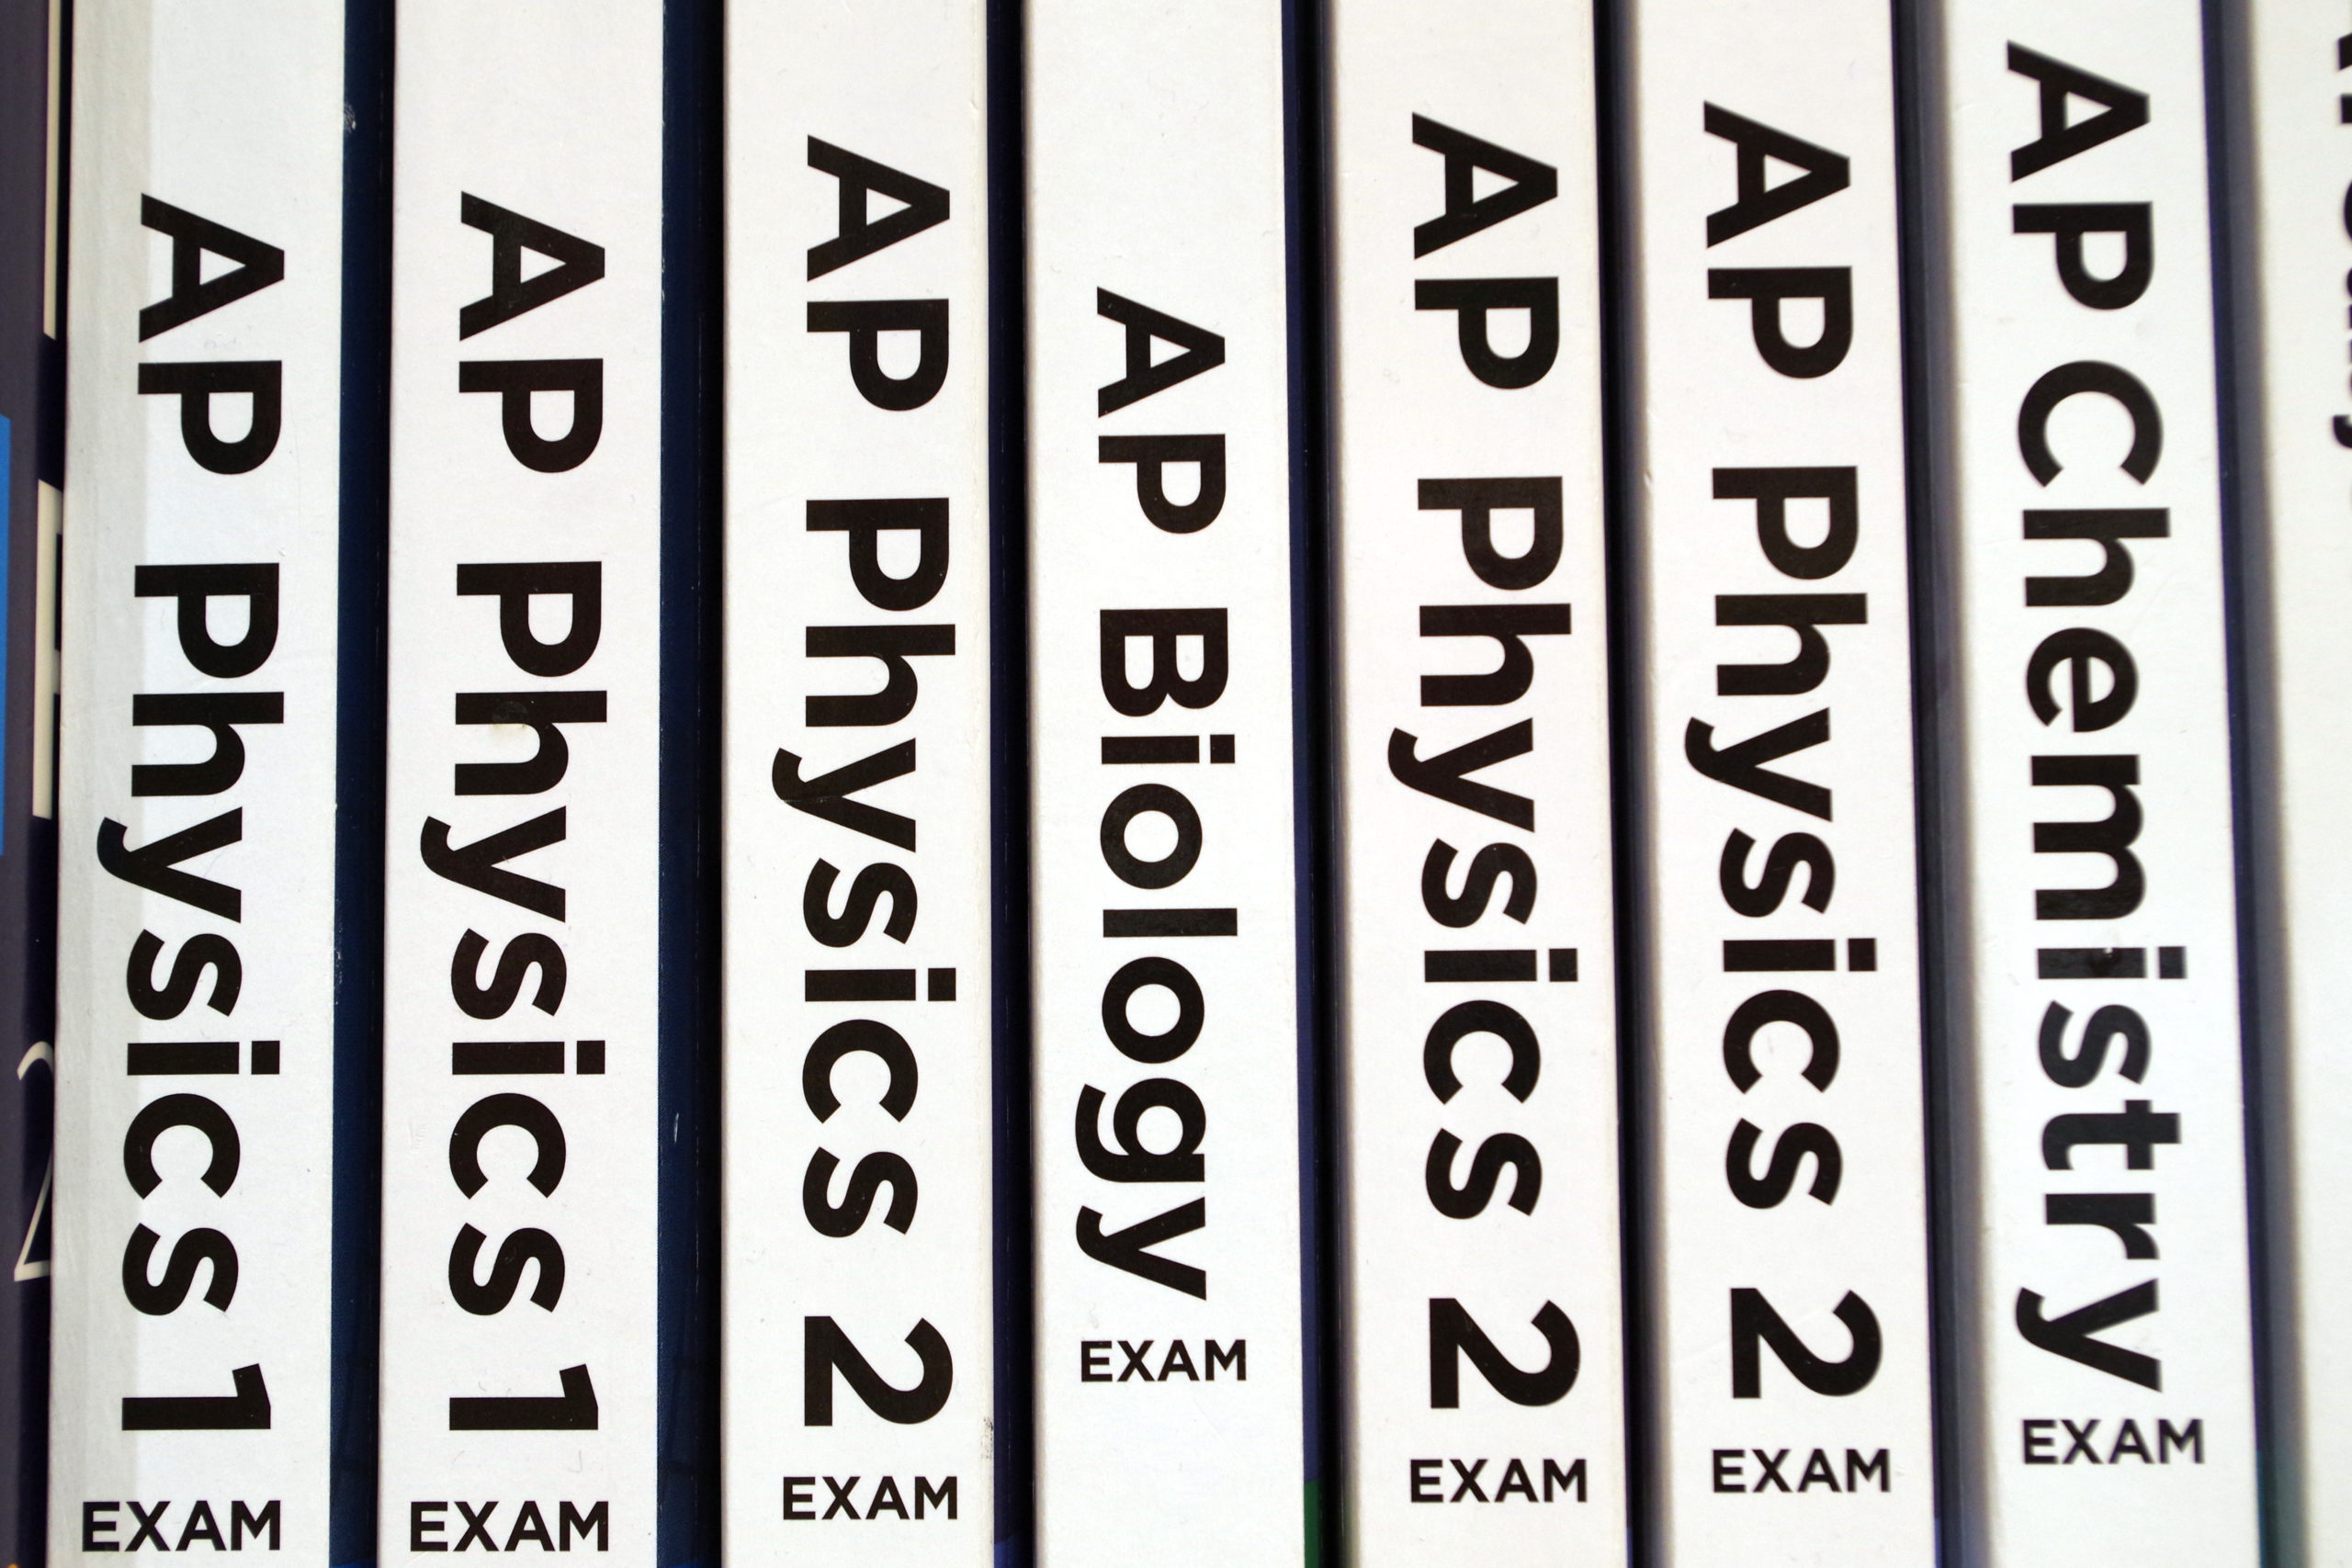 Updates to the AP exam affect how students will test in 2020.